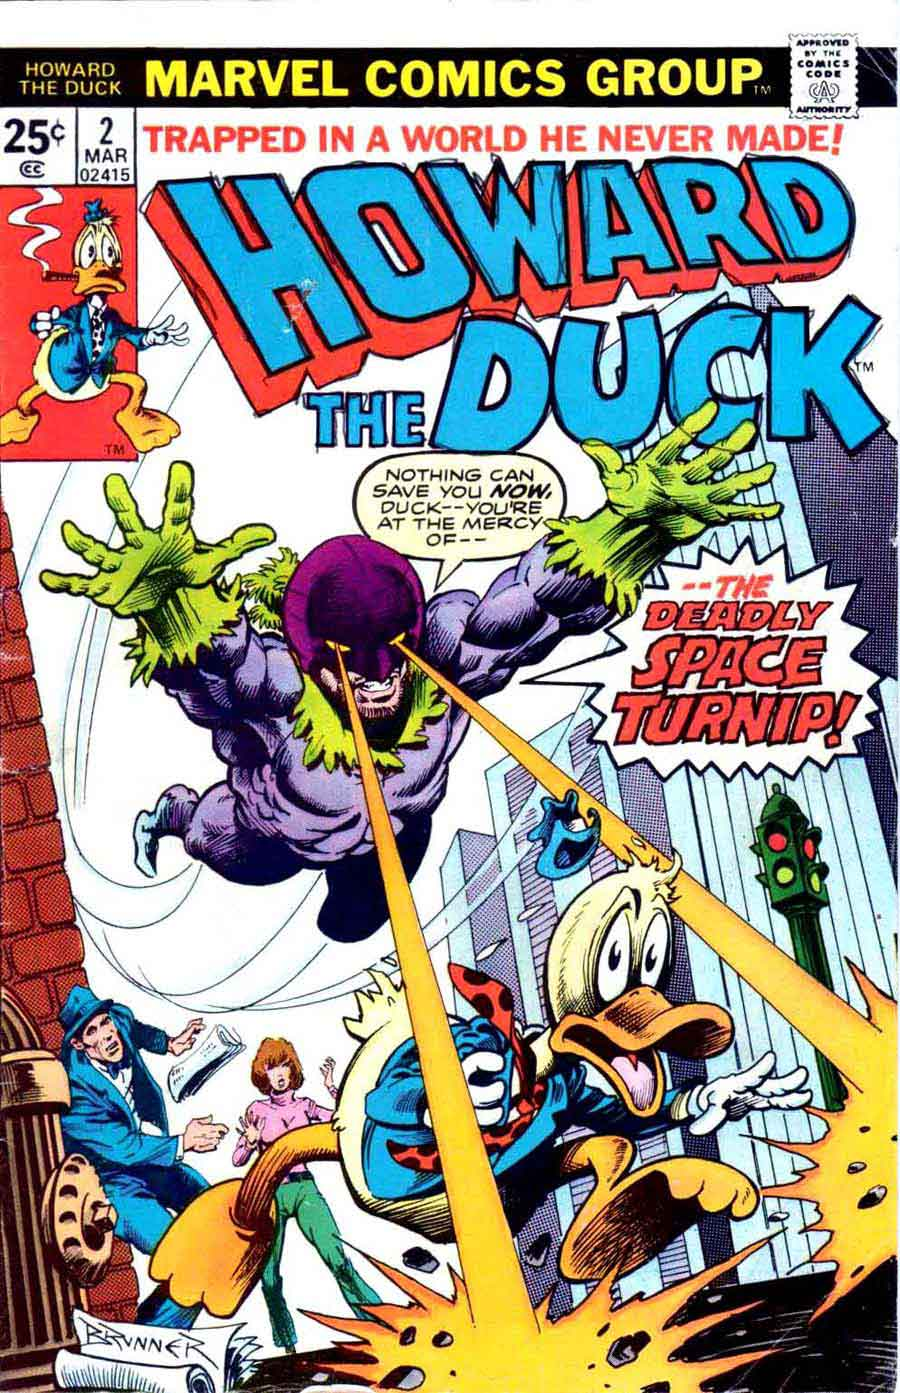 Howard the Duck v1 #2 marvel 1970s bronze age comic book cover art by Frank Brunner